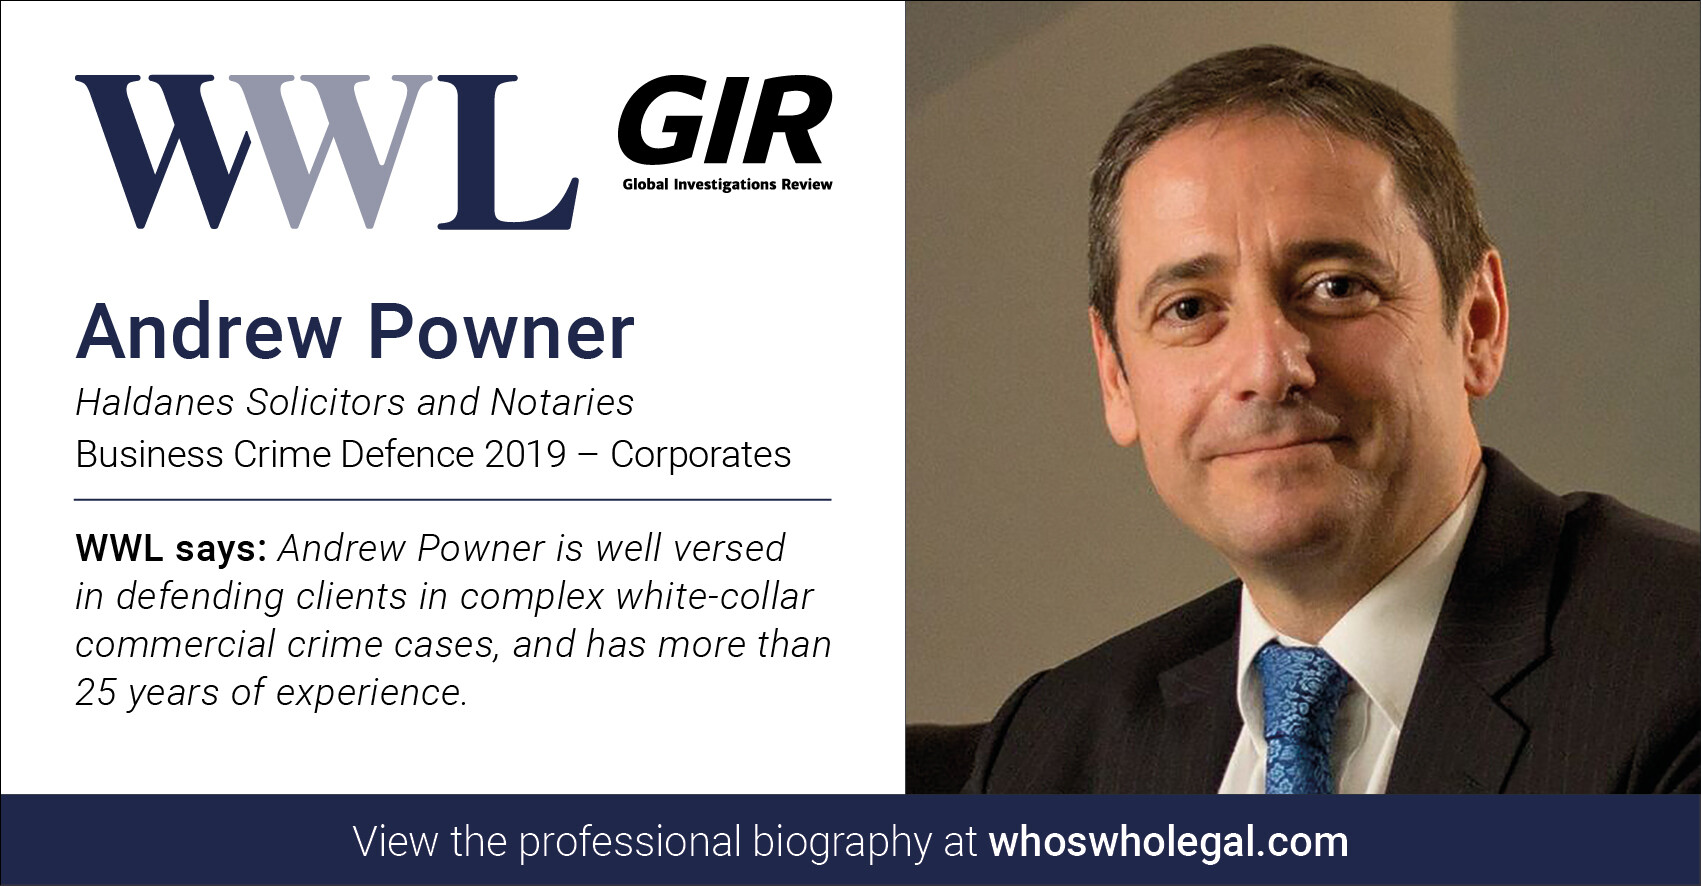 Andrew Powner WWL 2019 2 - Haldanes recognised in Who's Who Legal Business Crime Defence 2019